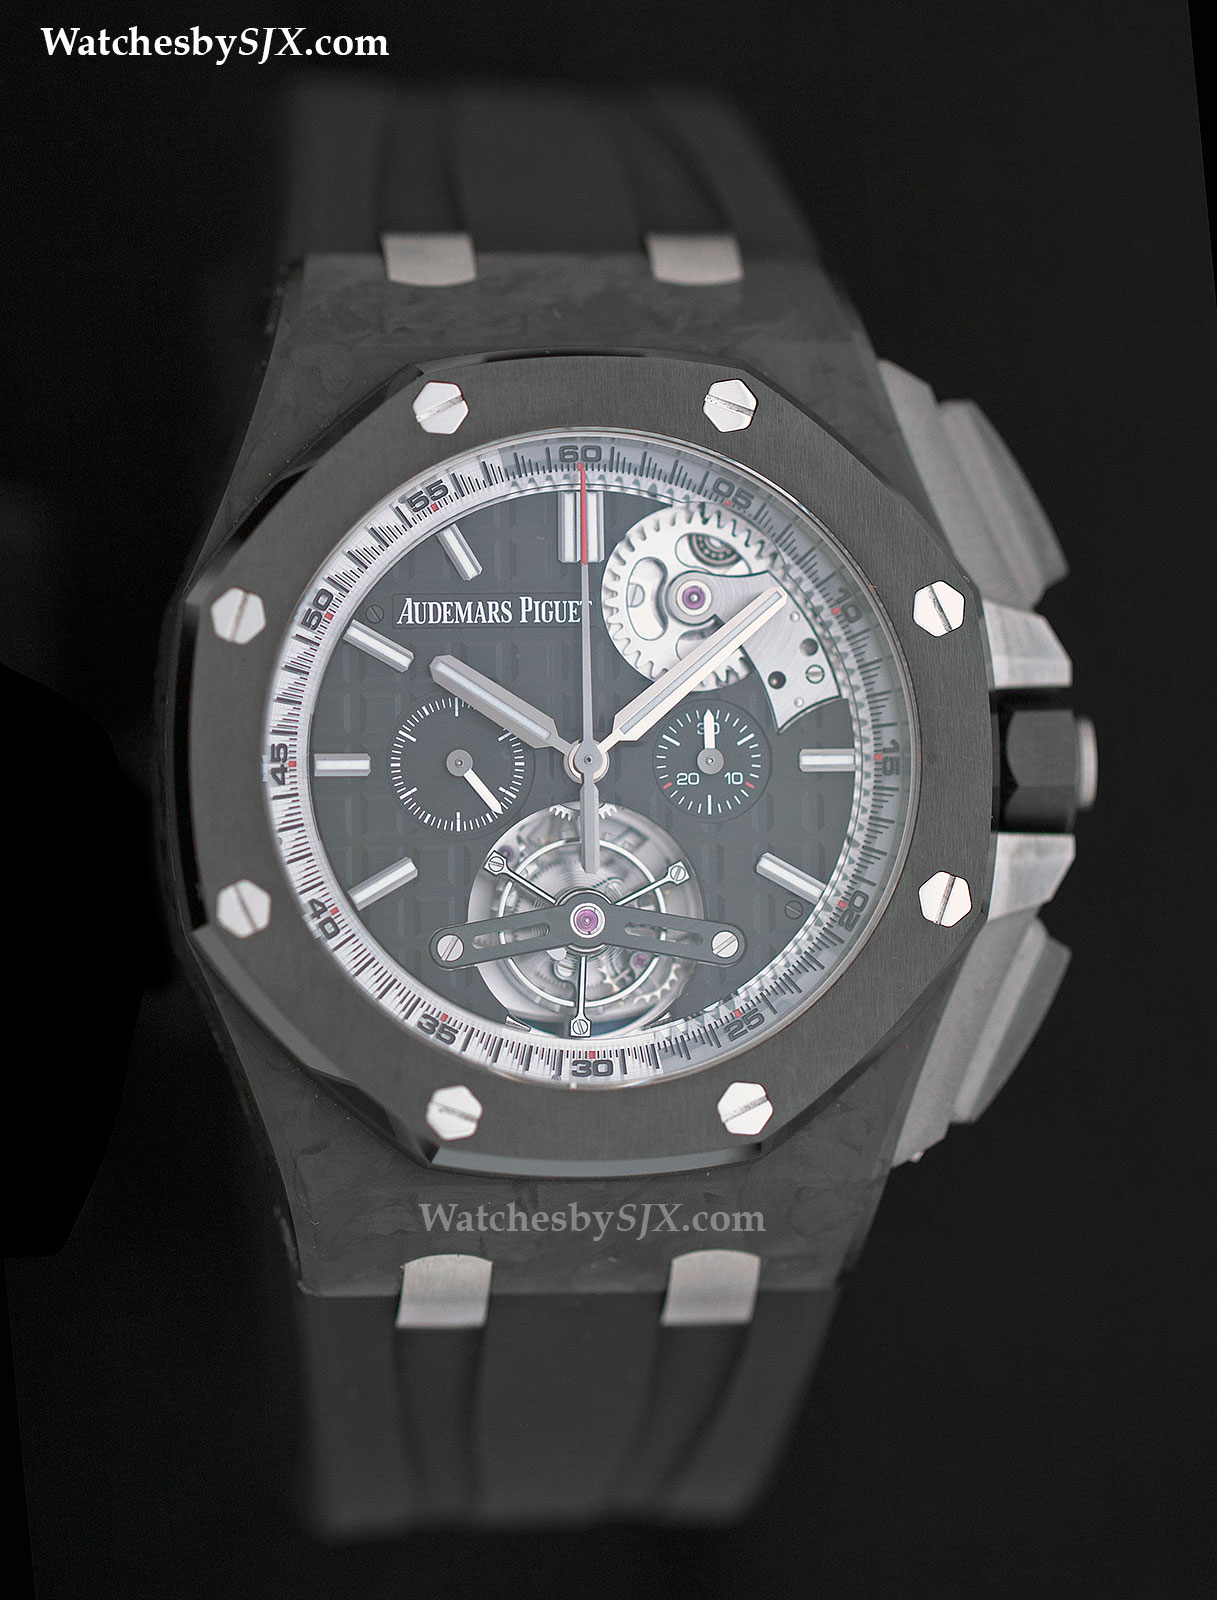 Audemars-Piguet-Royal-Oak-Offshore-Tourbillon-Chronograph-Carbon-Composite-1